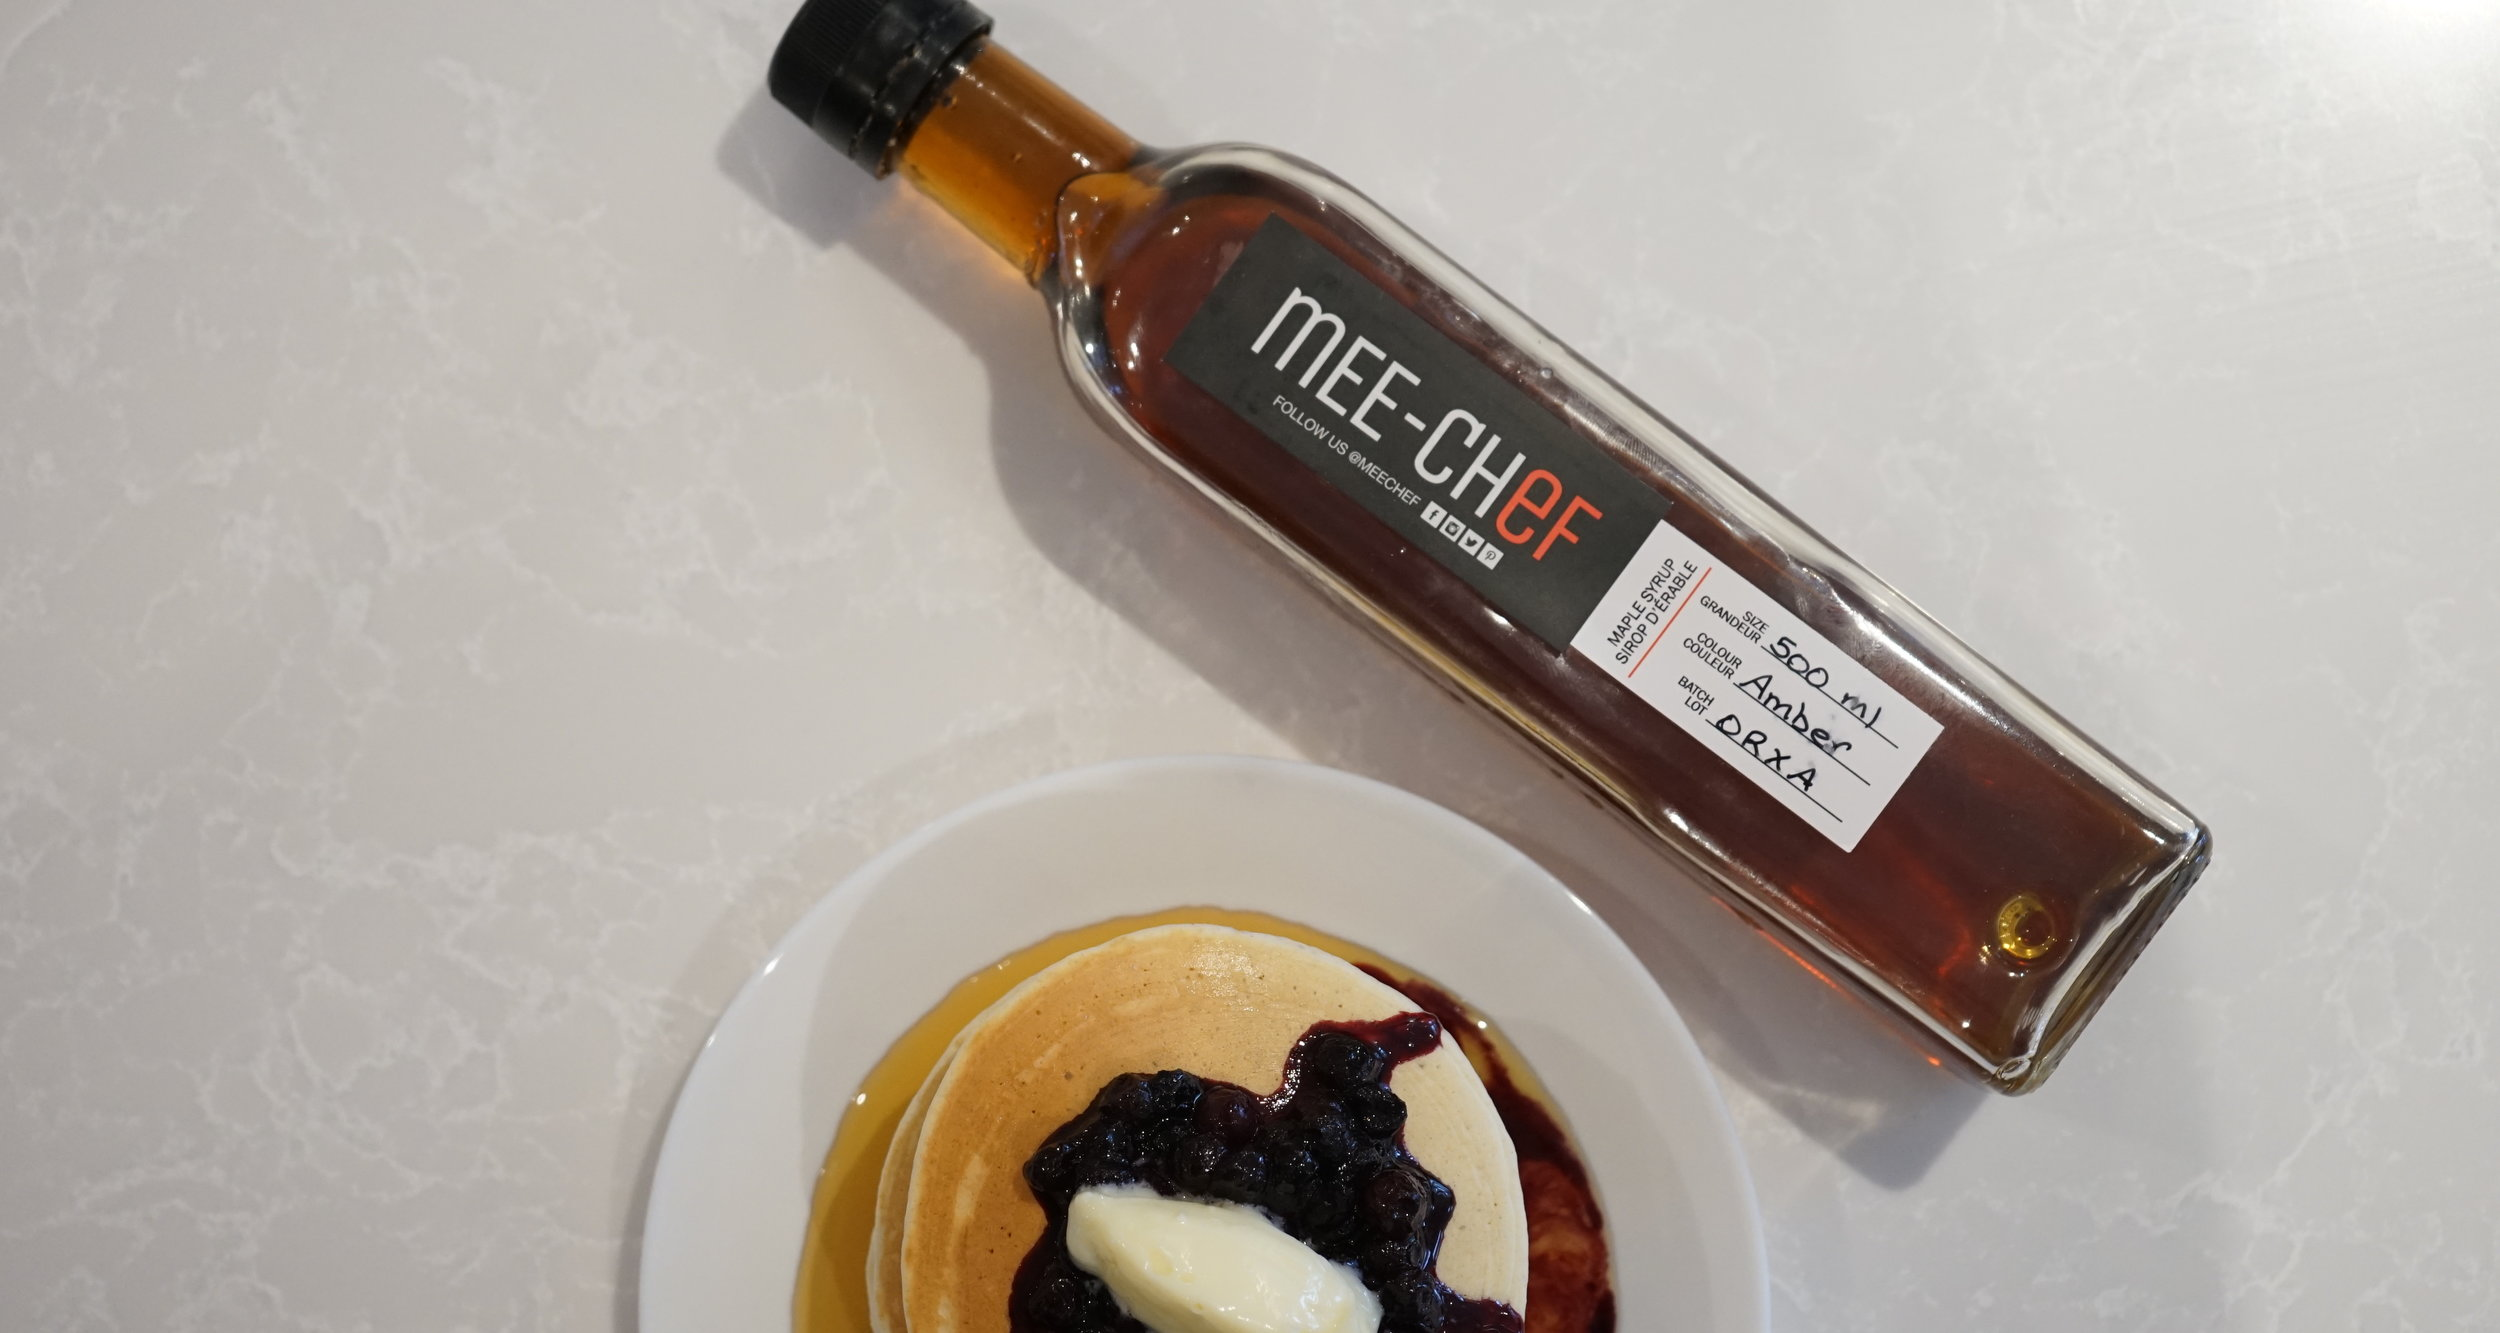 Maple Syrup.Canada's Claim to Fame. Made in Ontario. - Exclusive deal brought to you by Glengarry Farms.